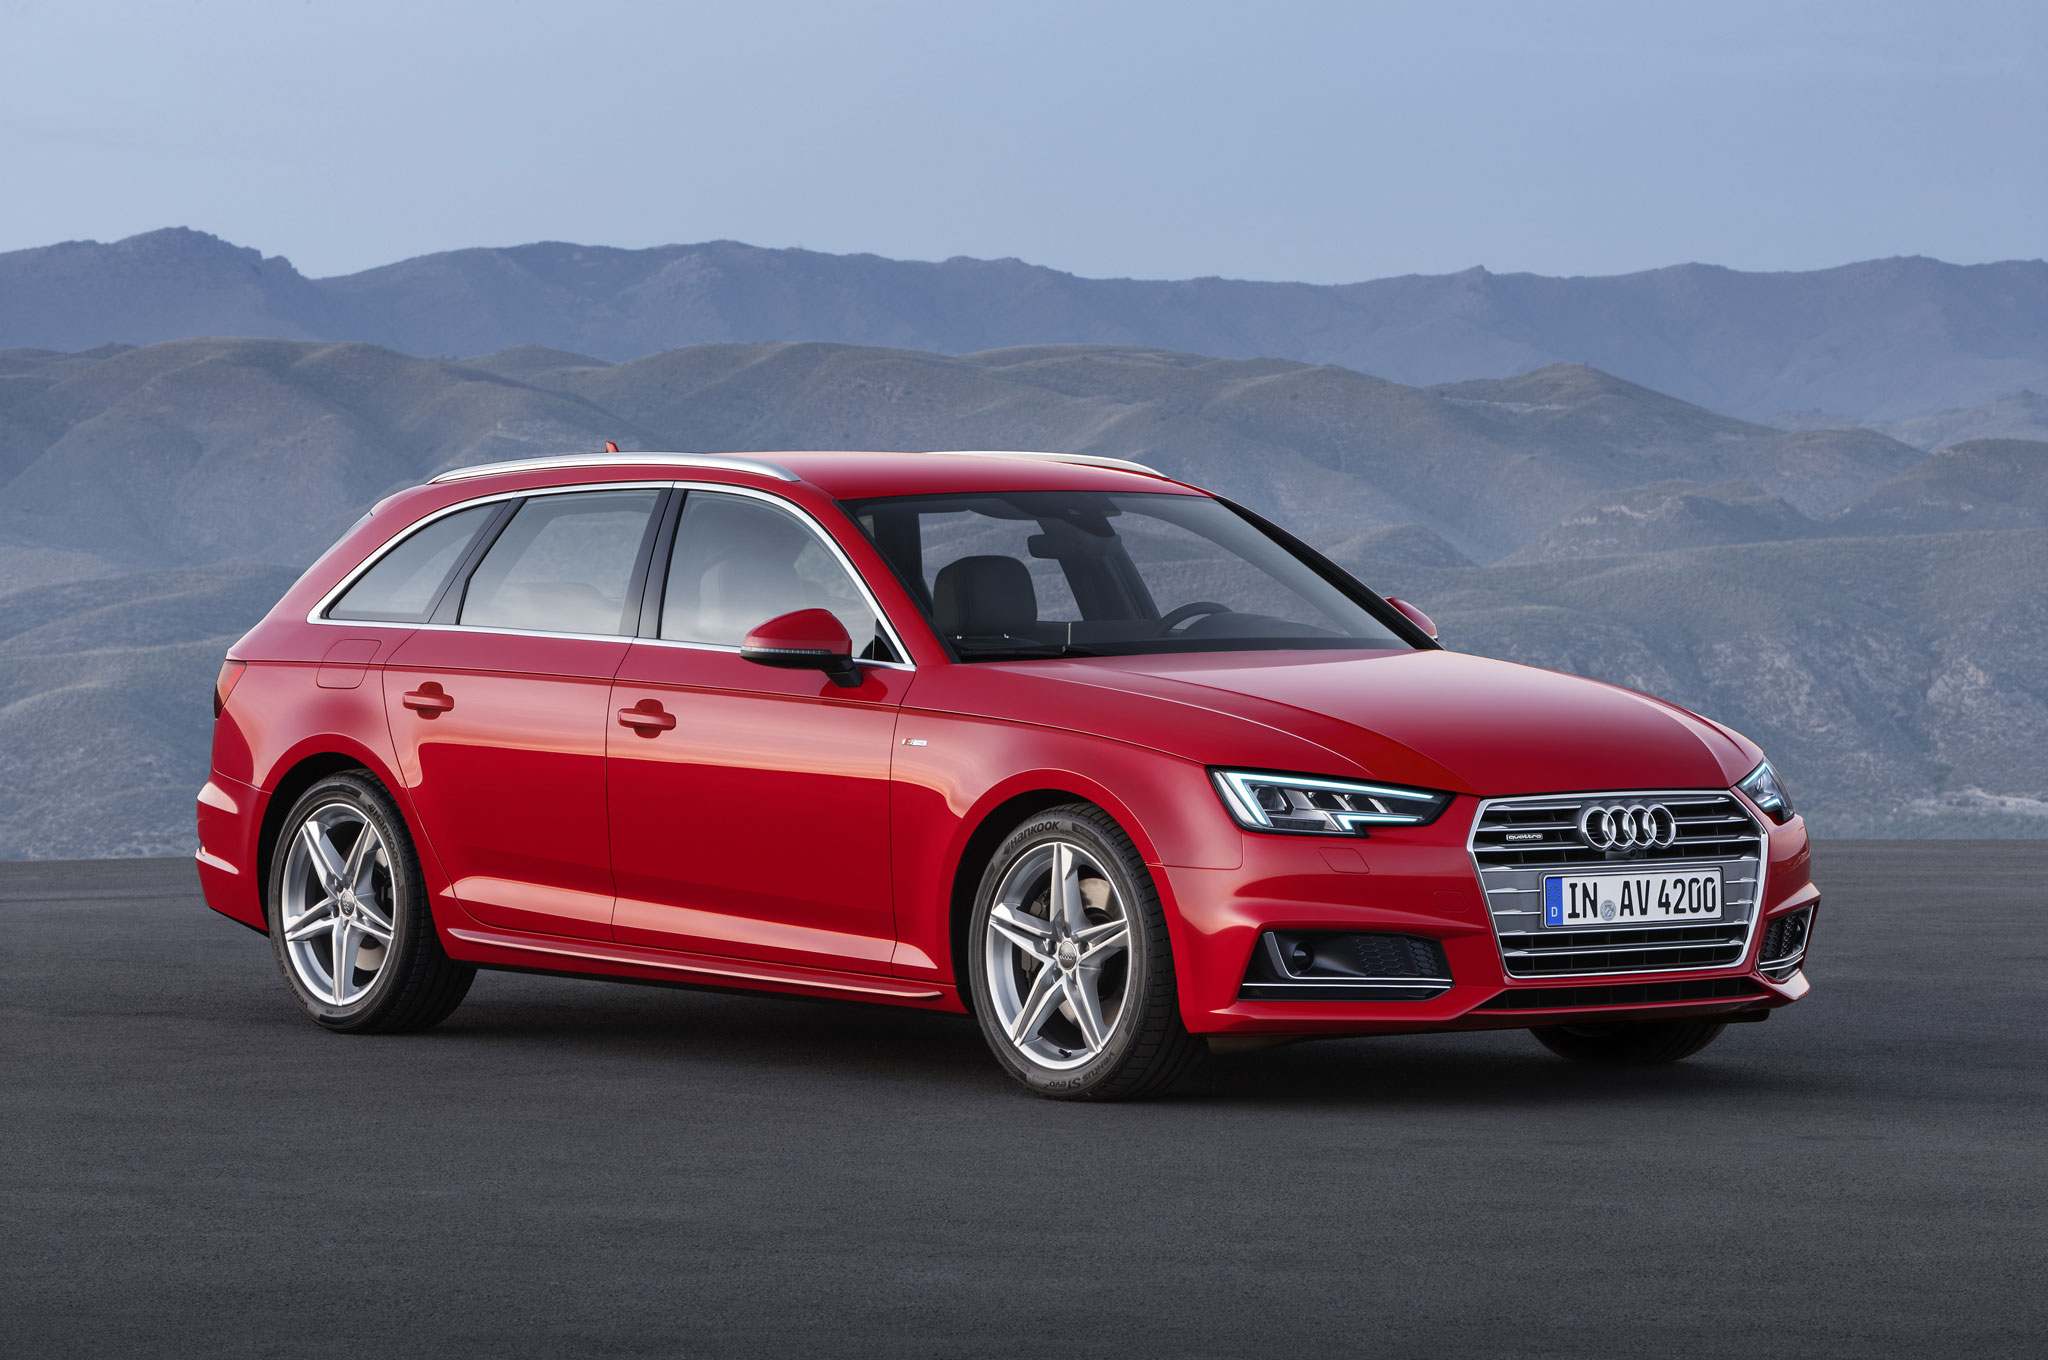 Audi A Revealed With Lighter Weight Evolutionary Design - Audi a4 weight